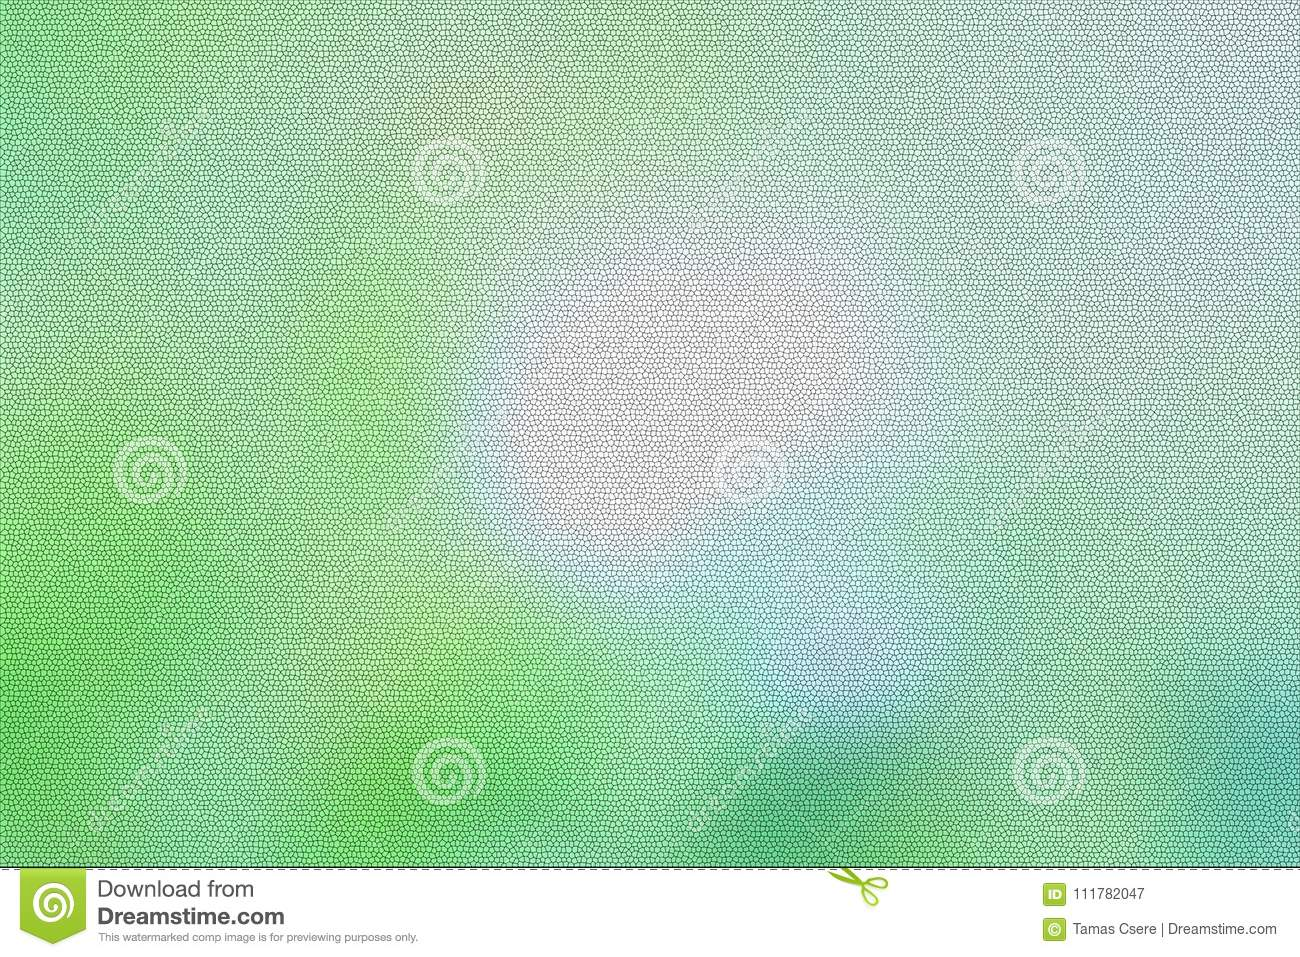 Pastel colored blur glass background